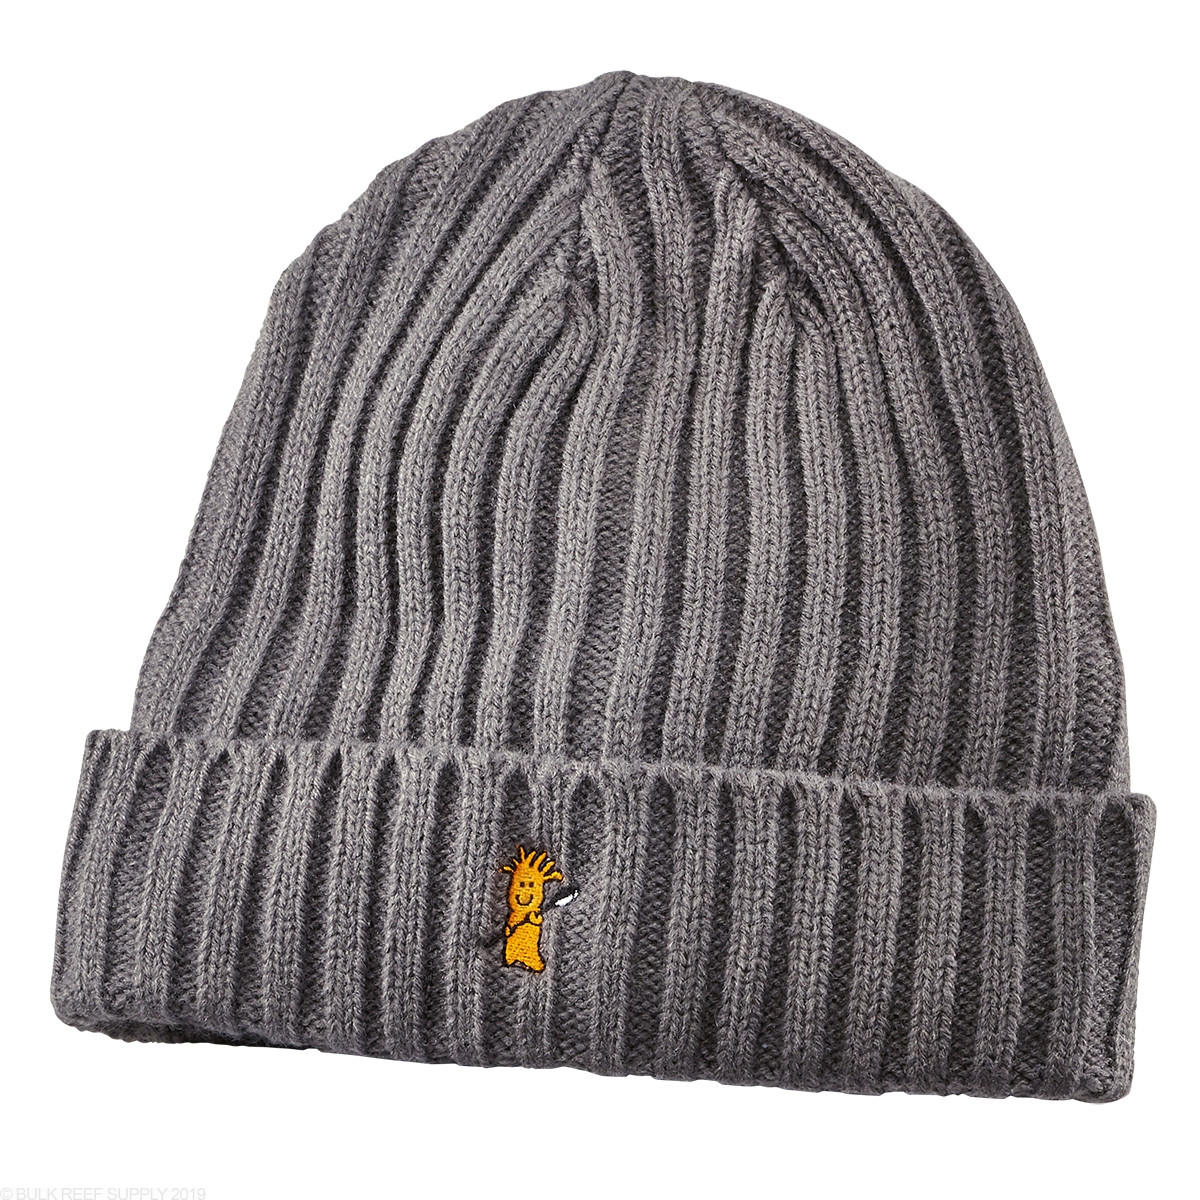 6d4ac36364e Mr. Chili Cable Knit Beanie - BRS - Bulk Reef Supply